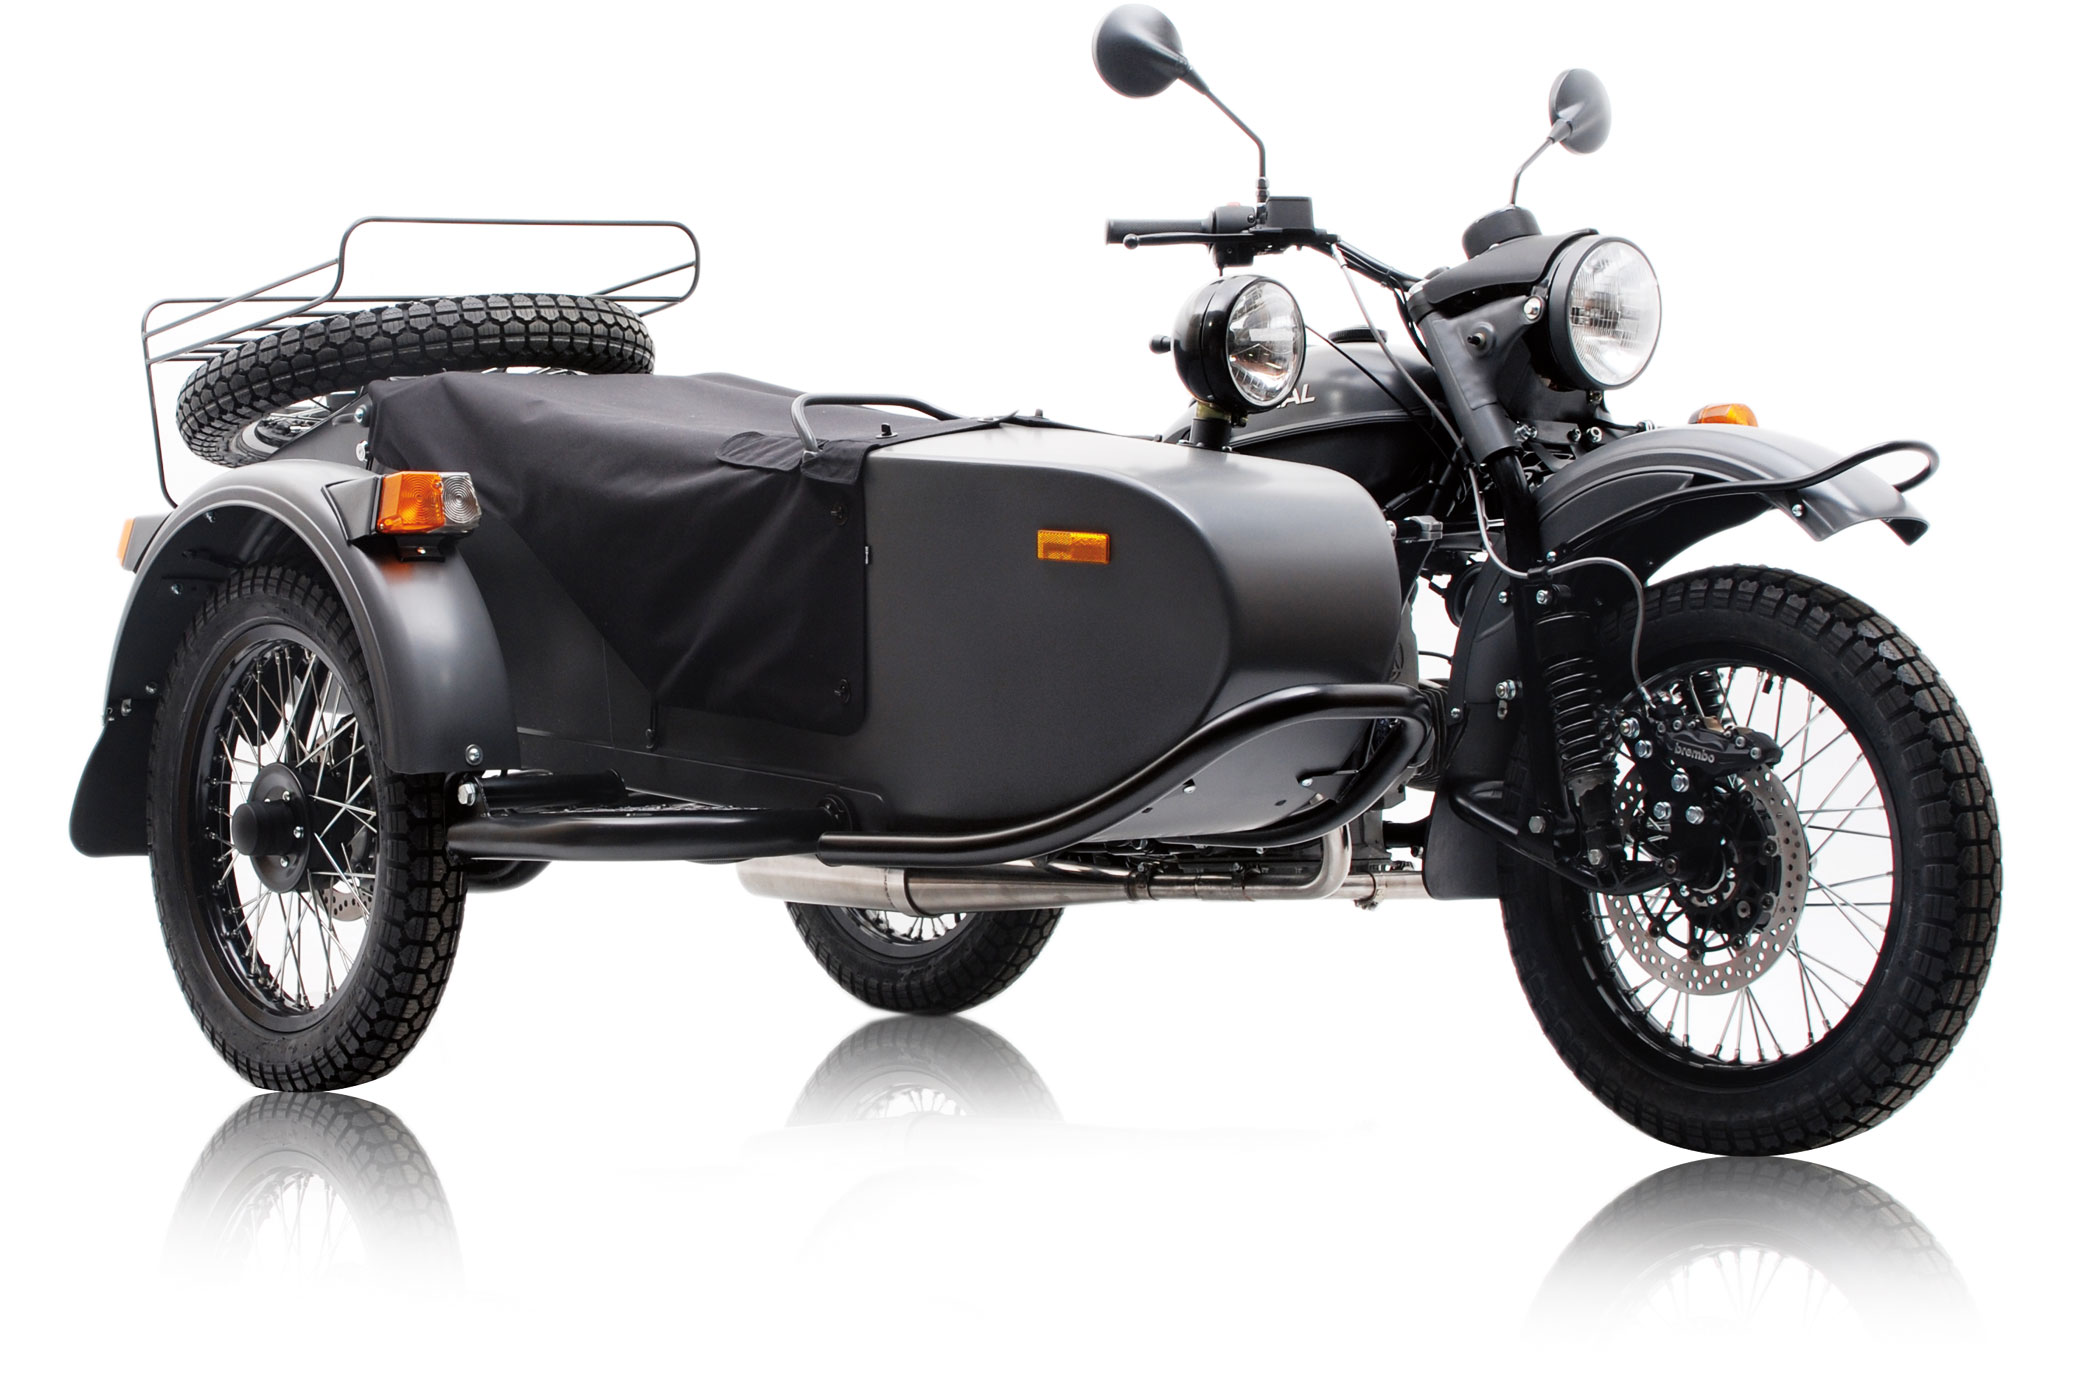 All-wheel drive motorcycles. Motorcycle Ural all-wheel drive